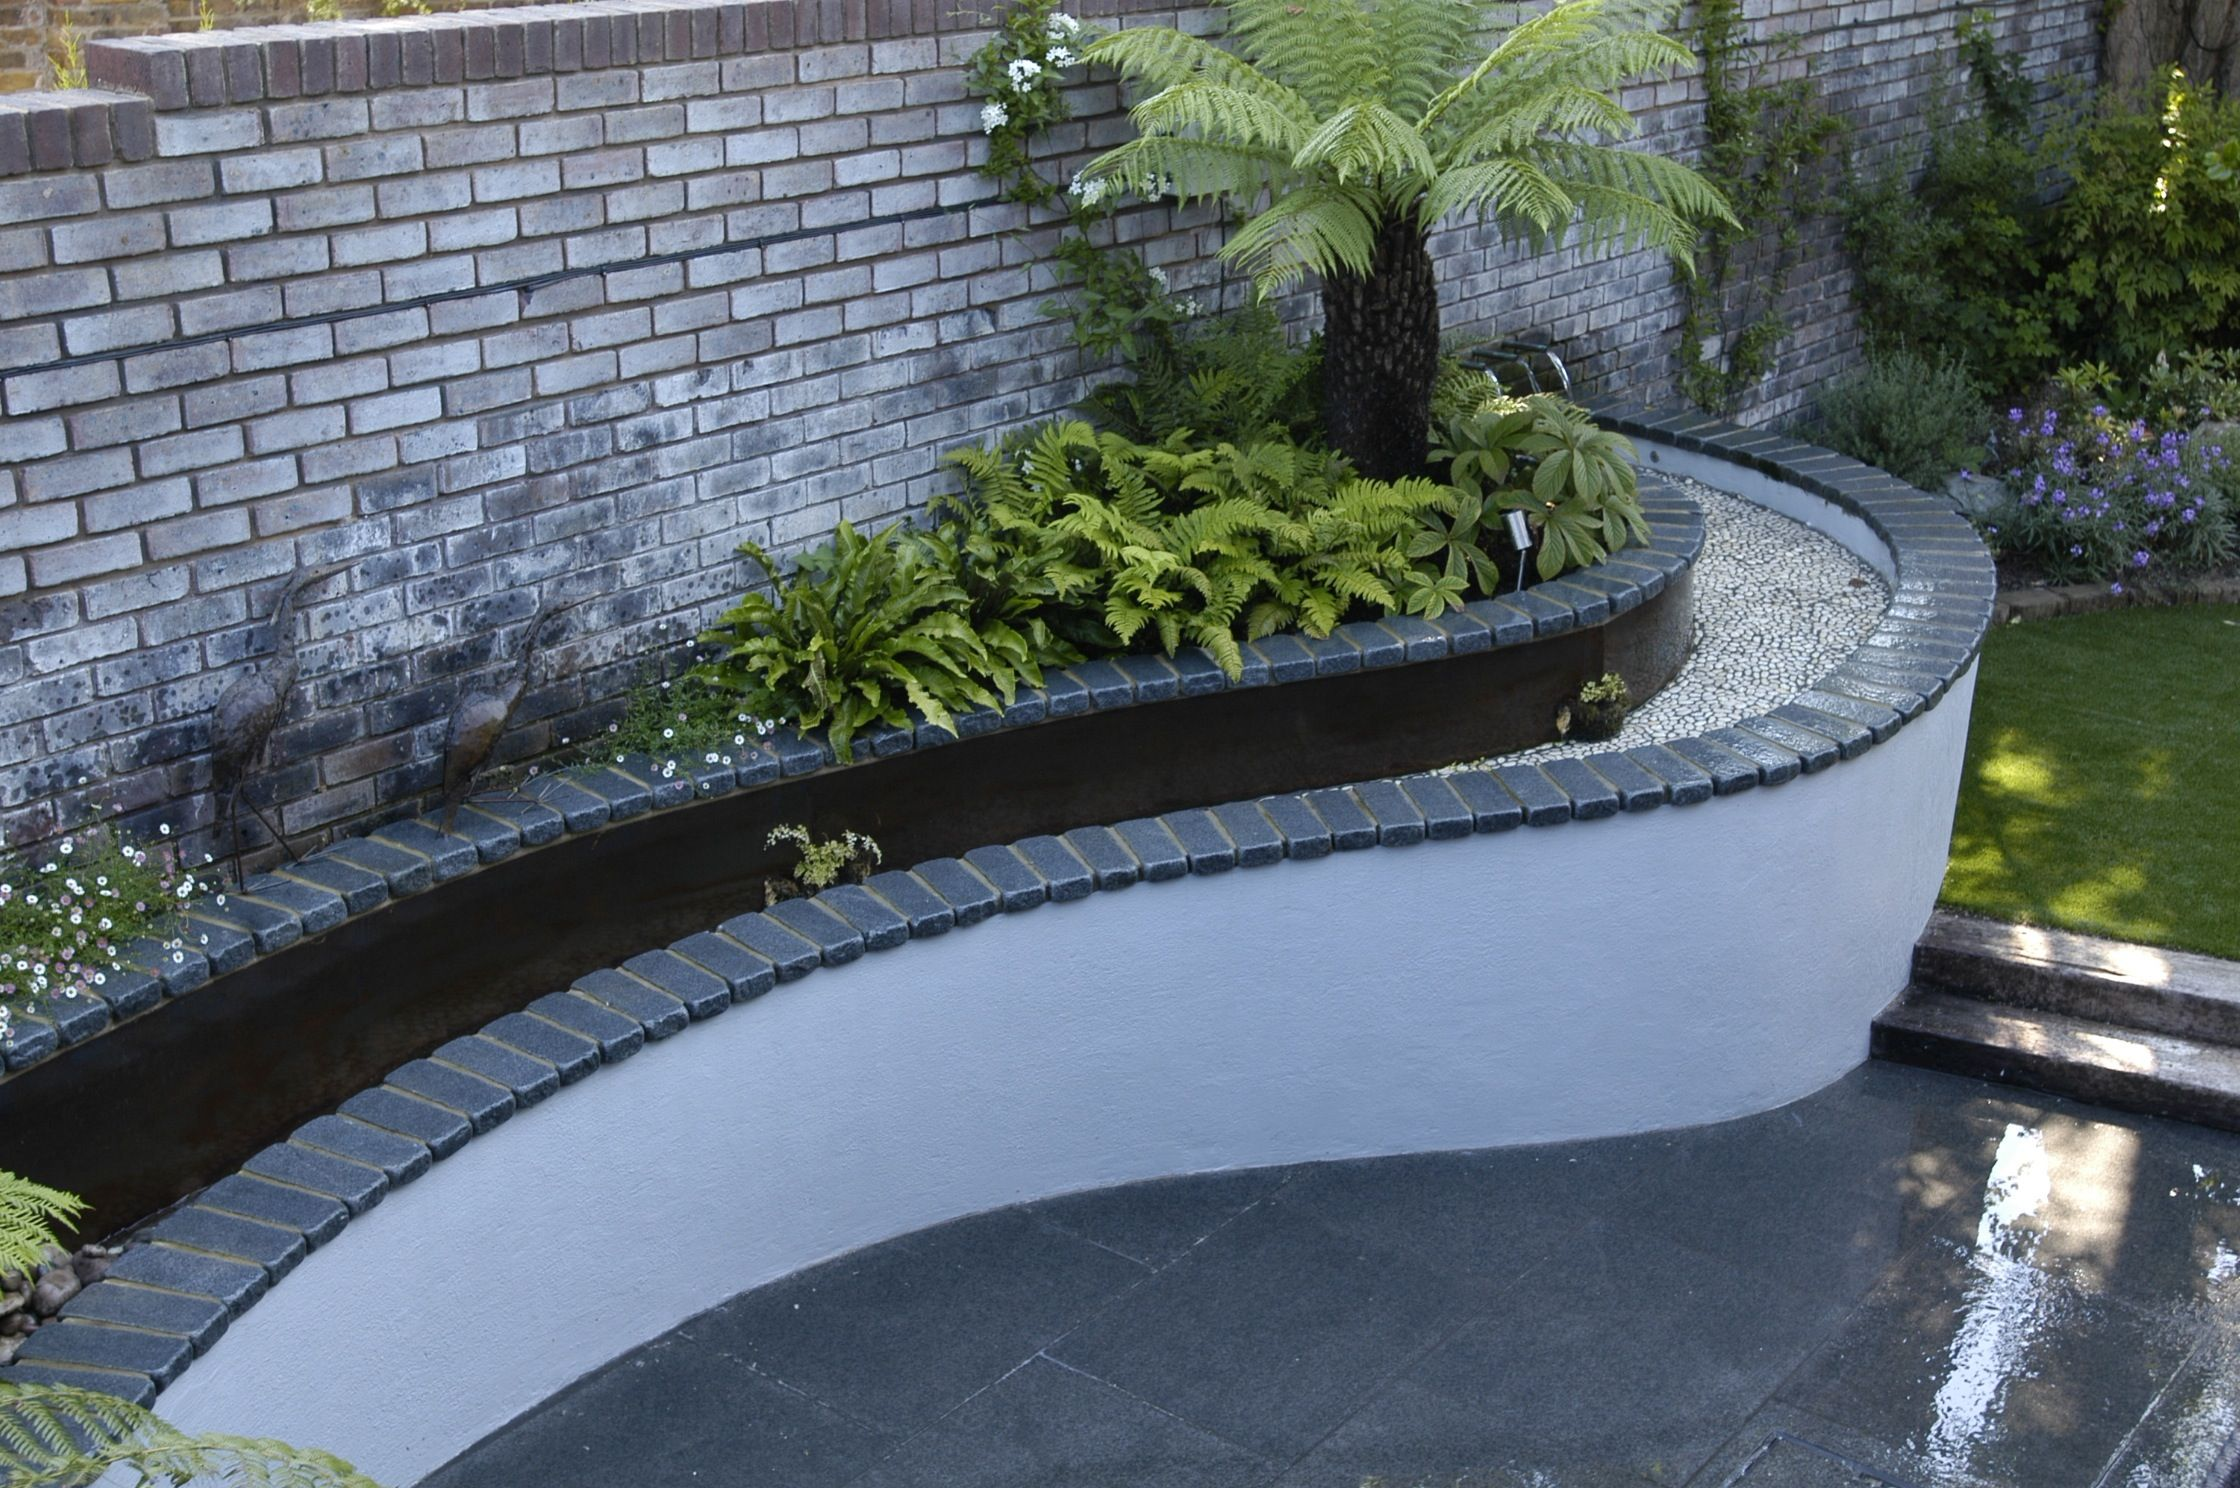 Water Features Patio Garden | Outdoor Designing | Pinterest | Water Features,  Gardens And Garden Ideas